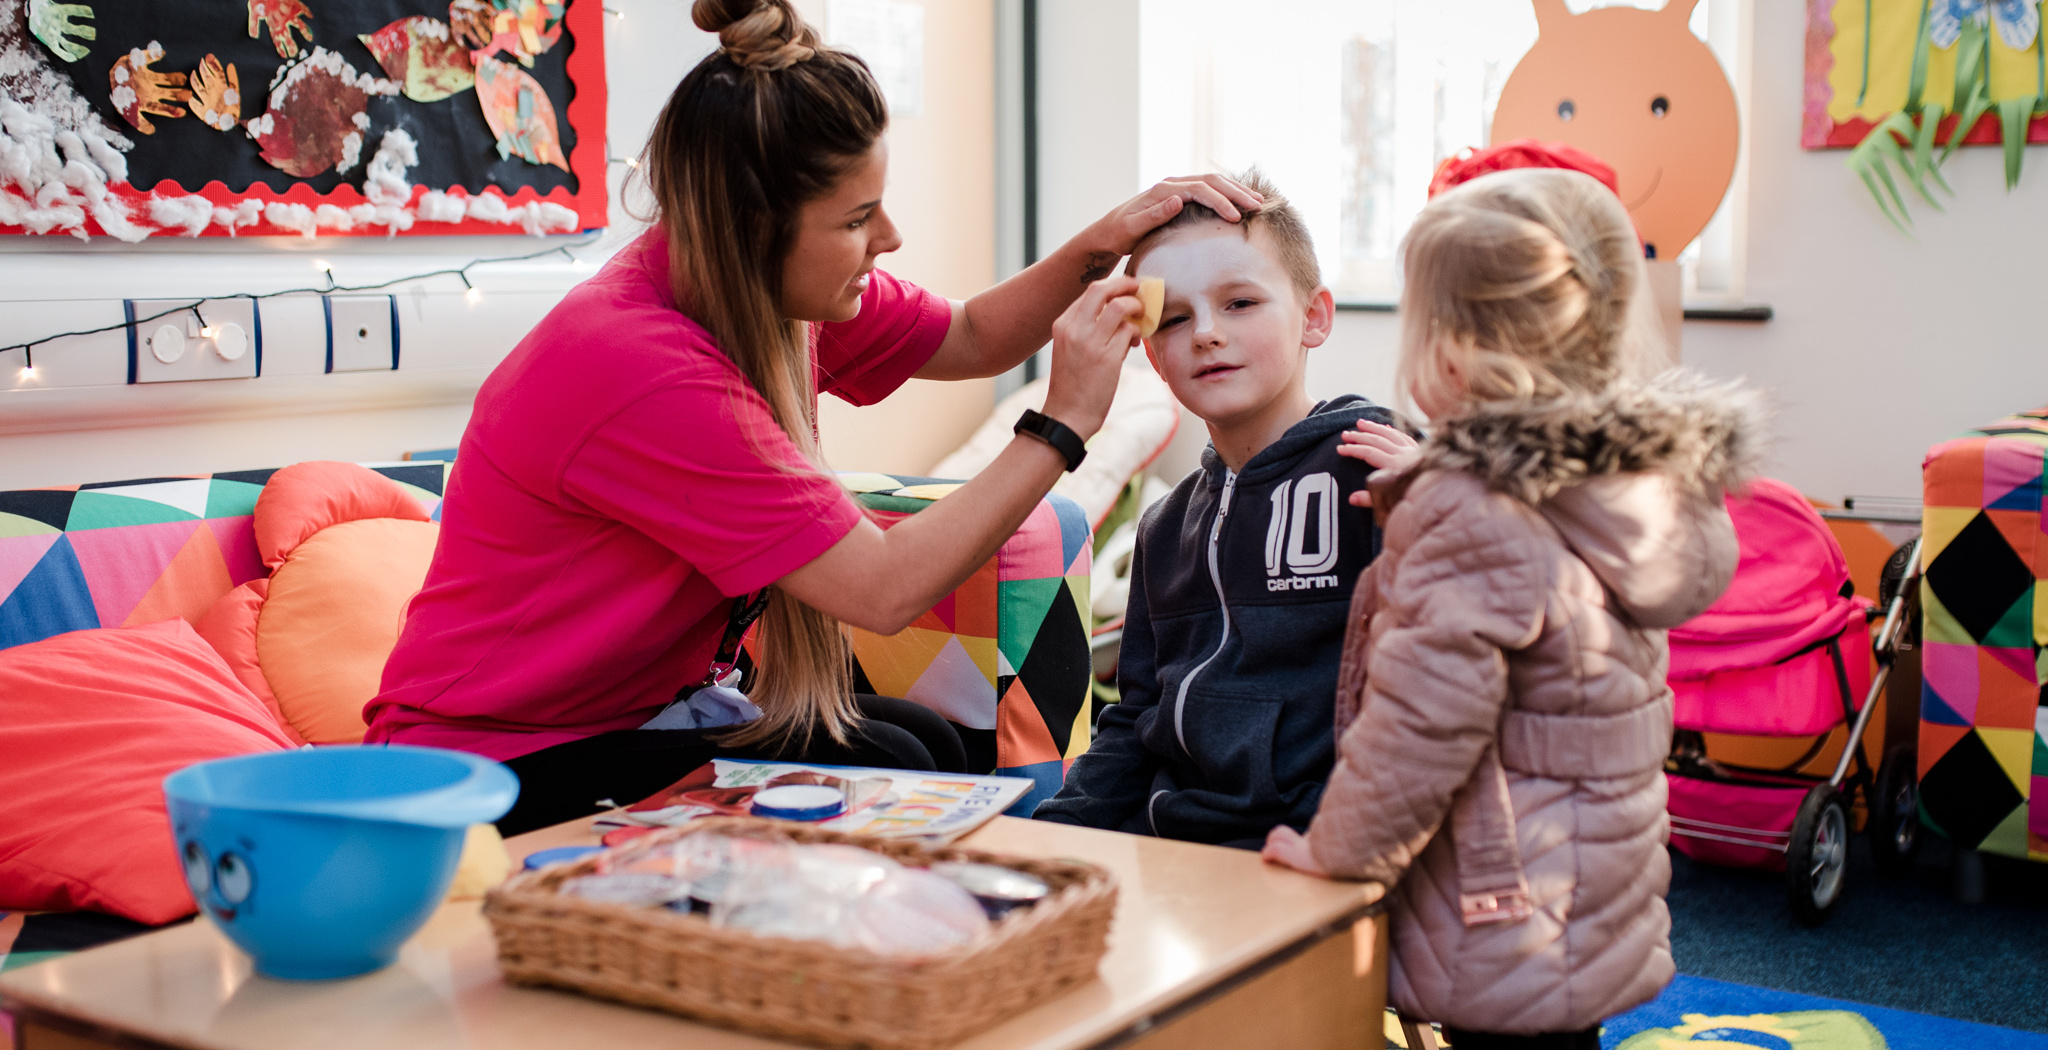 Face painting at Morfa ICC